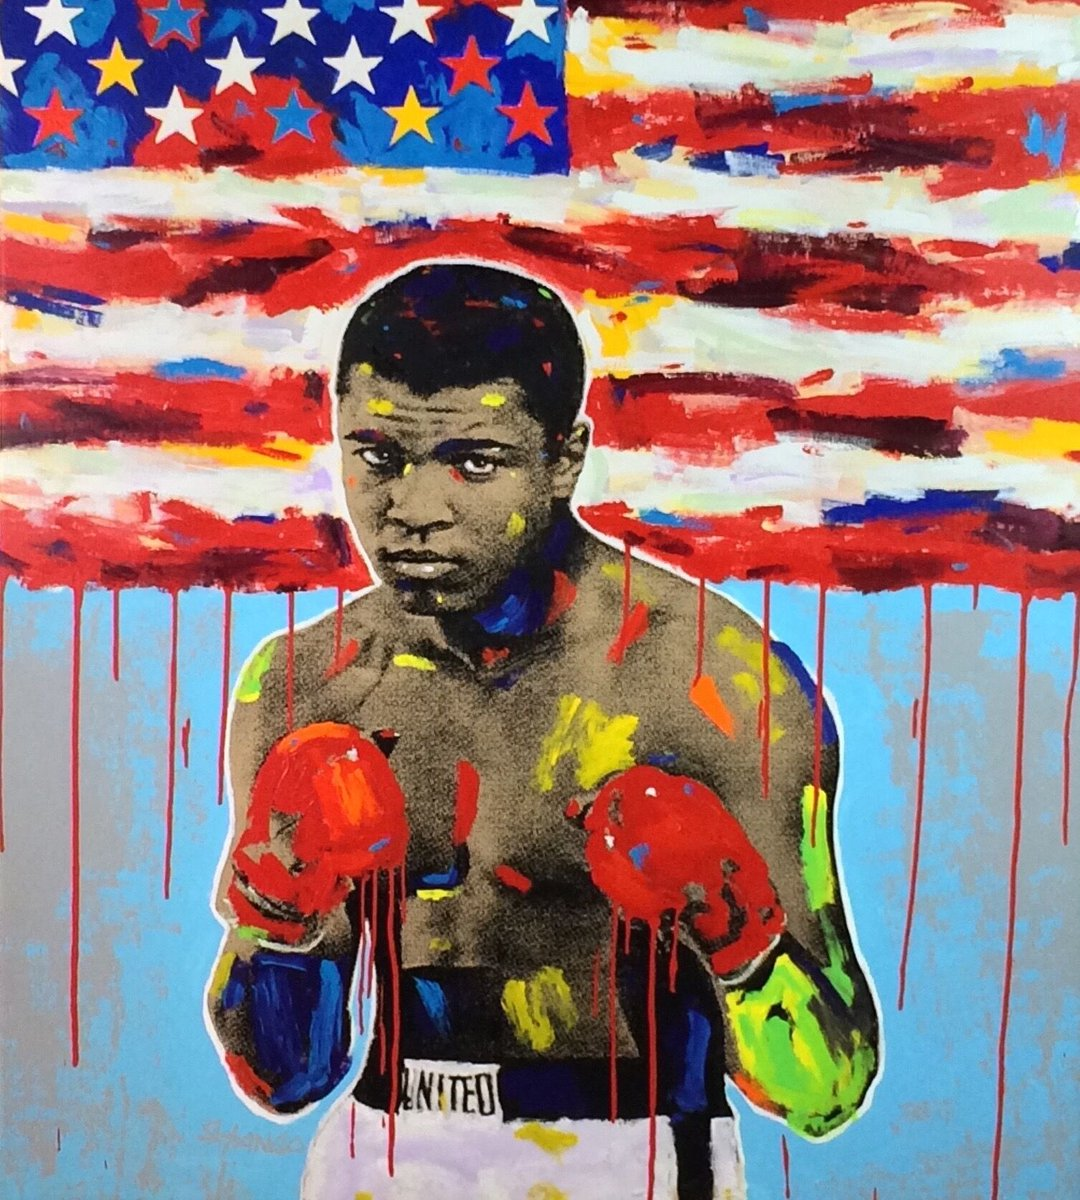 RT @AliCenter: Our new exhibit Inspiration to Action: An Art Tribute to Muhammad Ali opens today! Come check it out! https://t.co/QqWwdofeeX